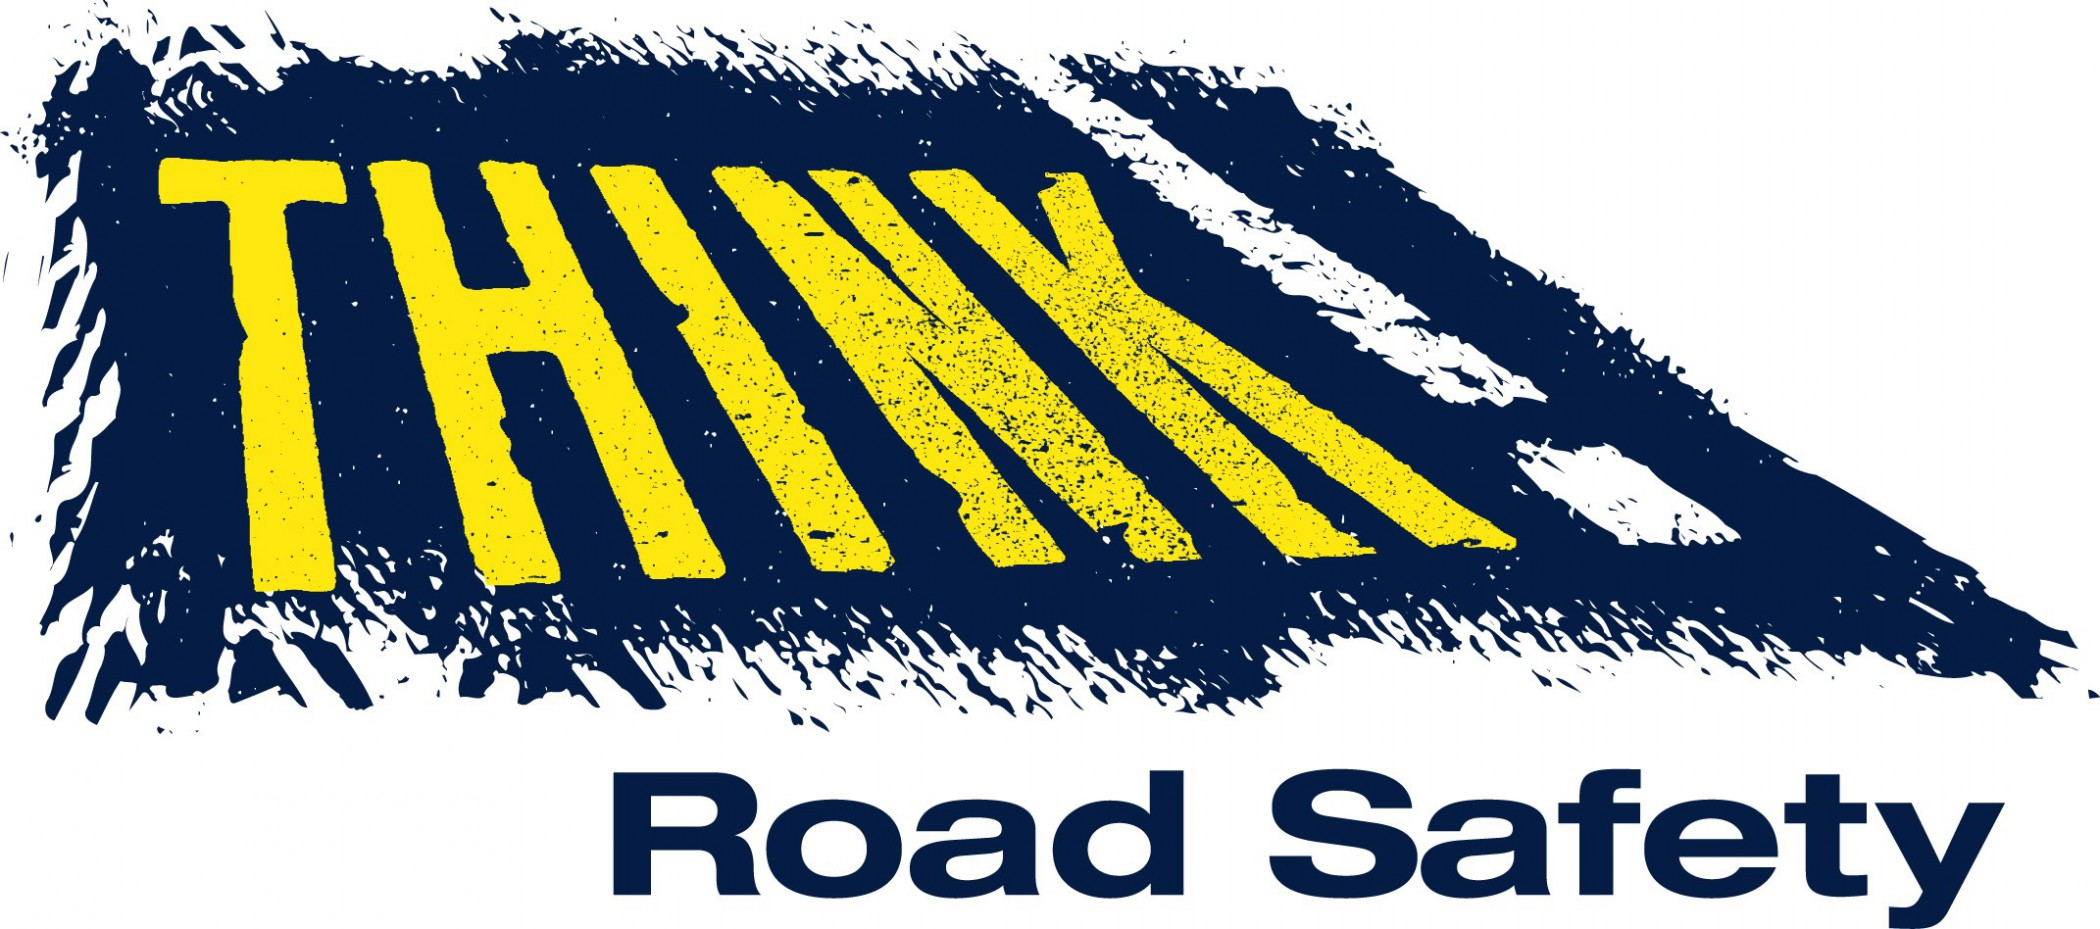 RSA unhappy with lack of Garda road safety plan